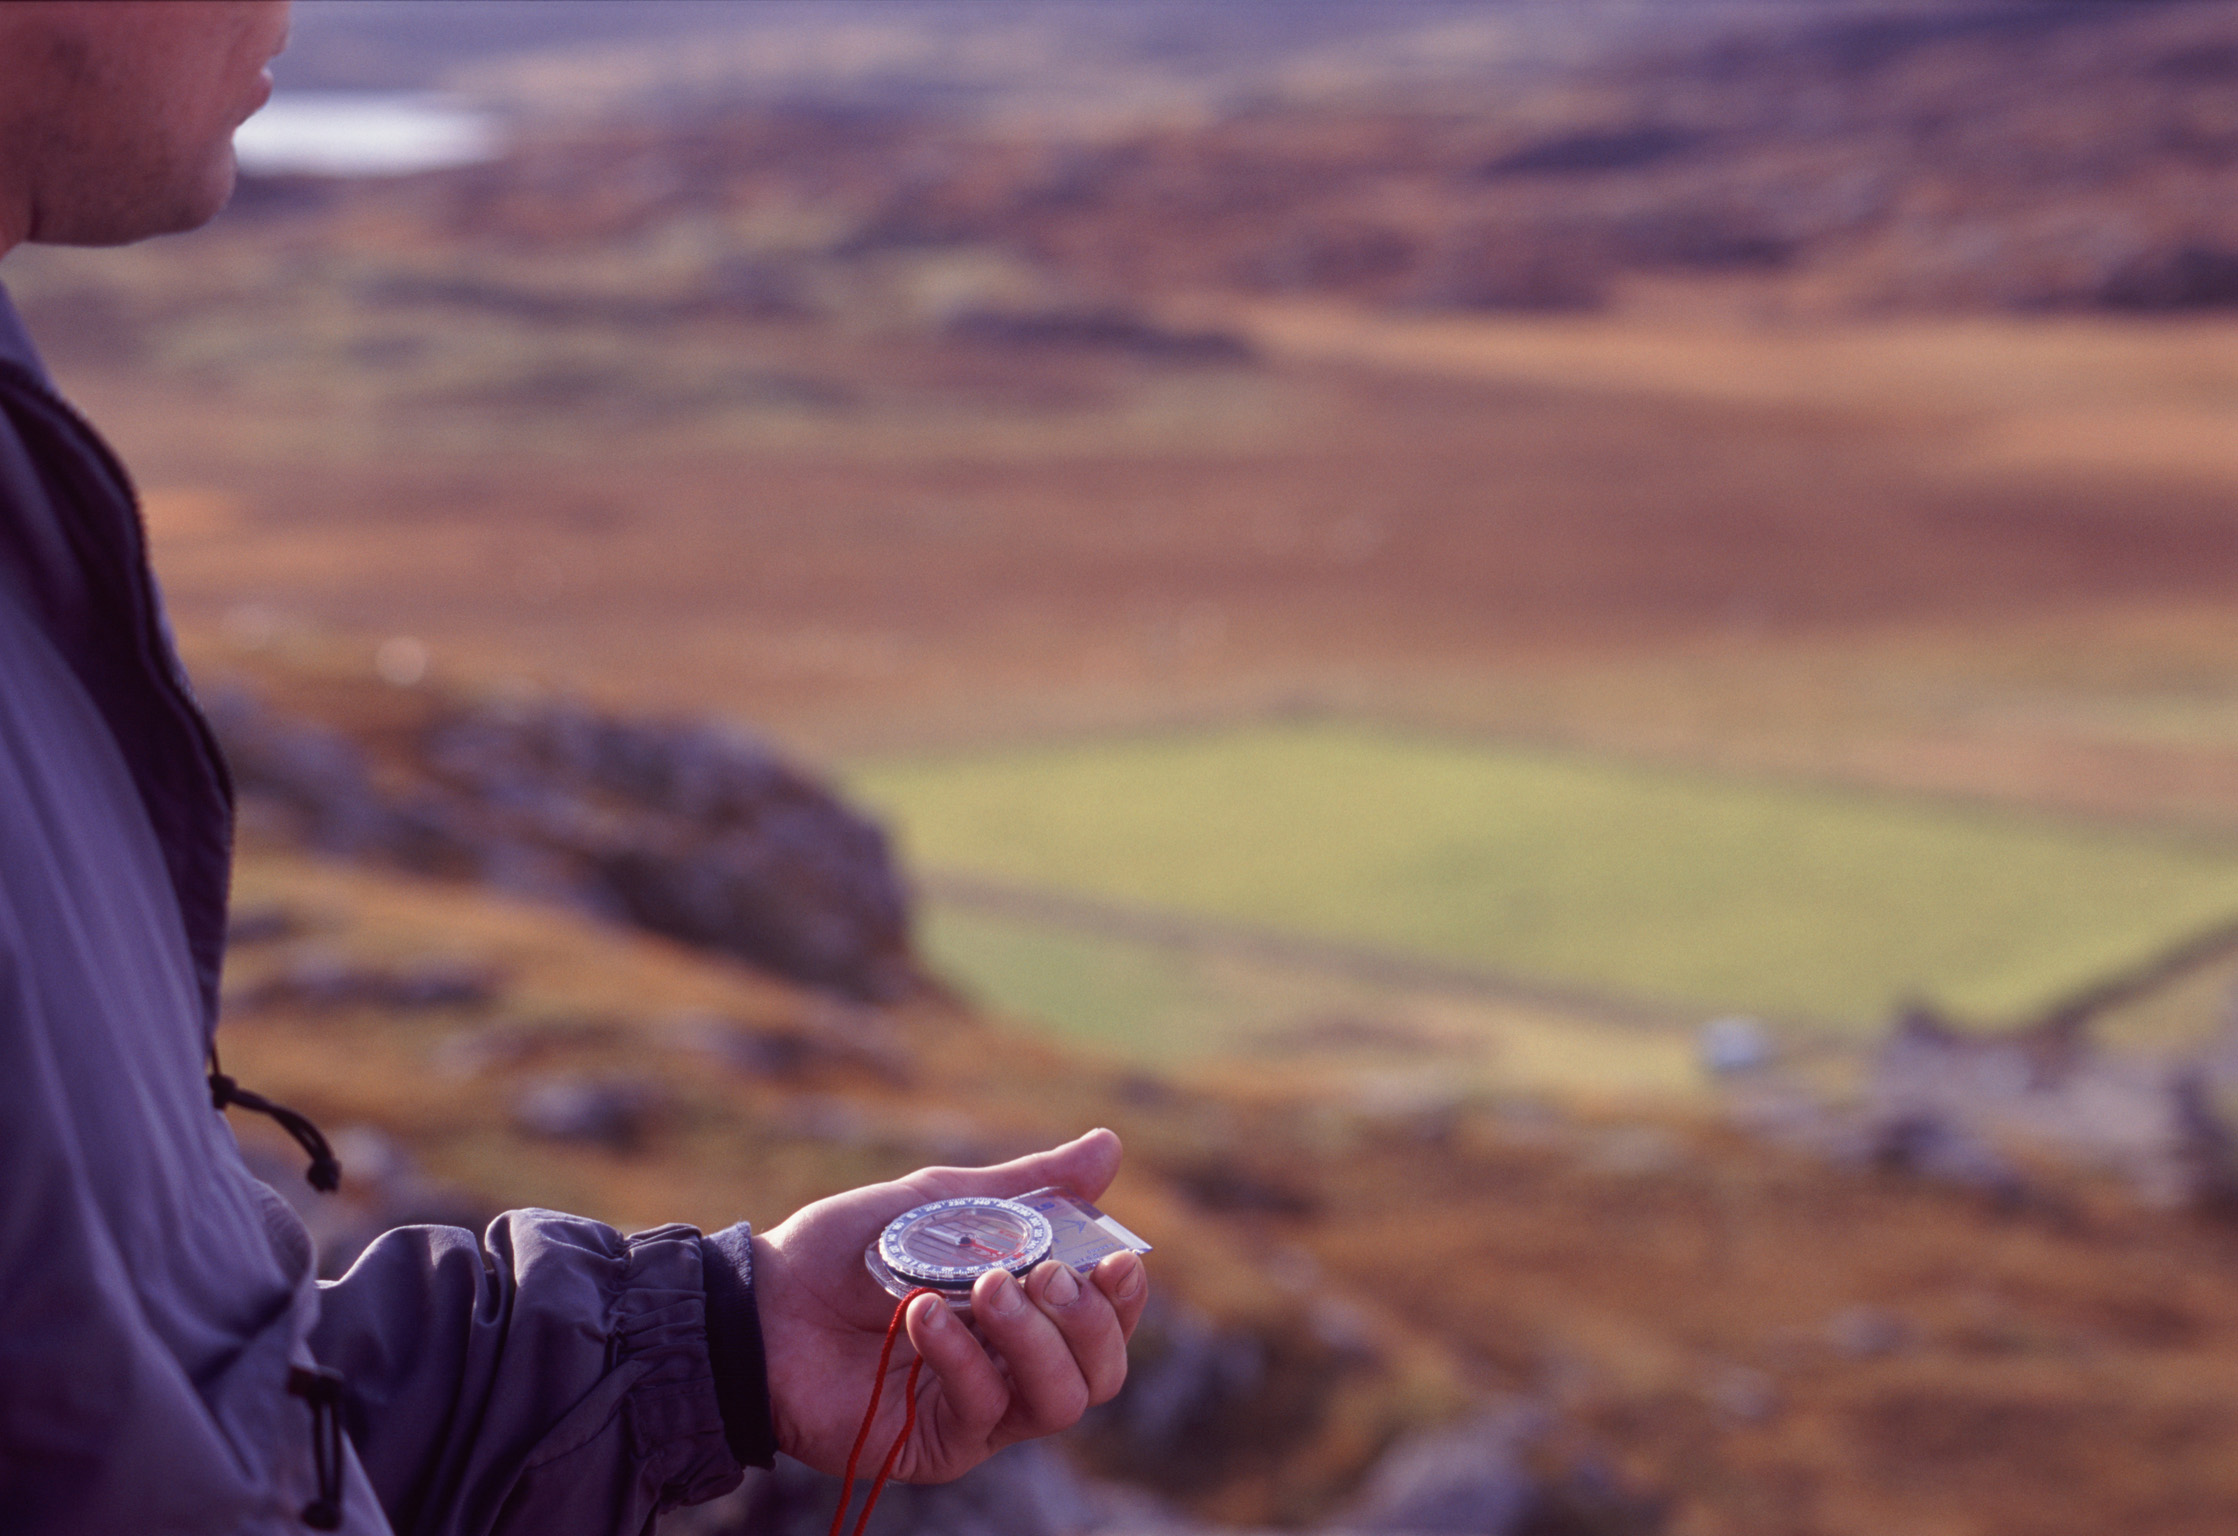 Man holding a compass in his hand when out walking in the mountains of Scotland to navigate using magnetic north